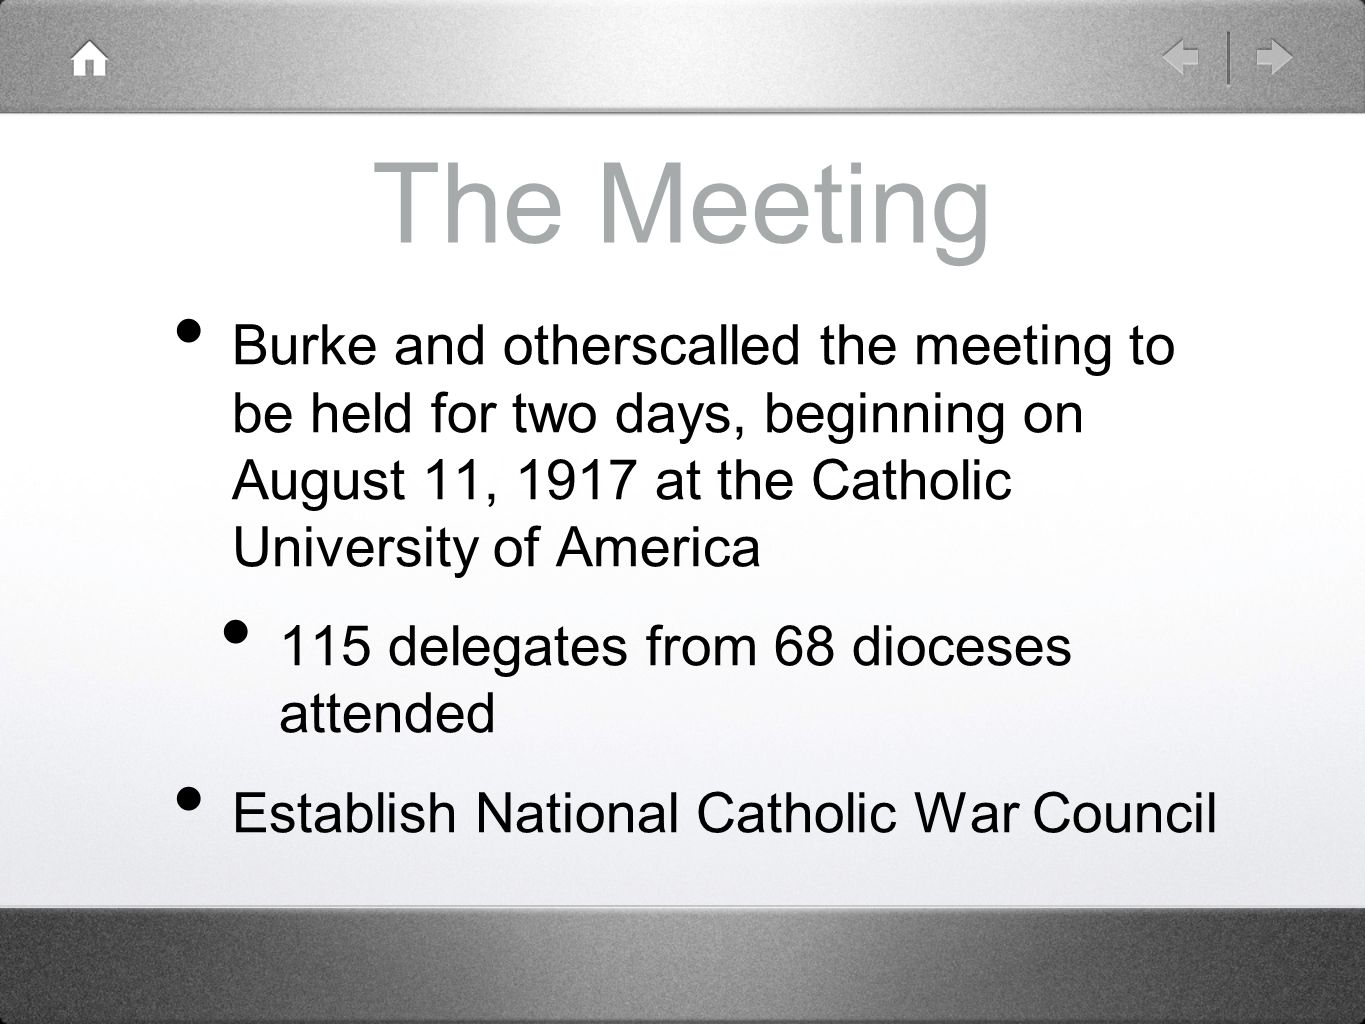 The Meeting Burke and otherscalled the meeting to be held for two days, beginning on August 11, 1917 at the Catholic University of America.